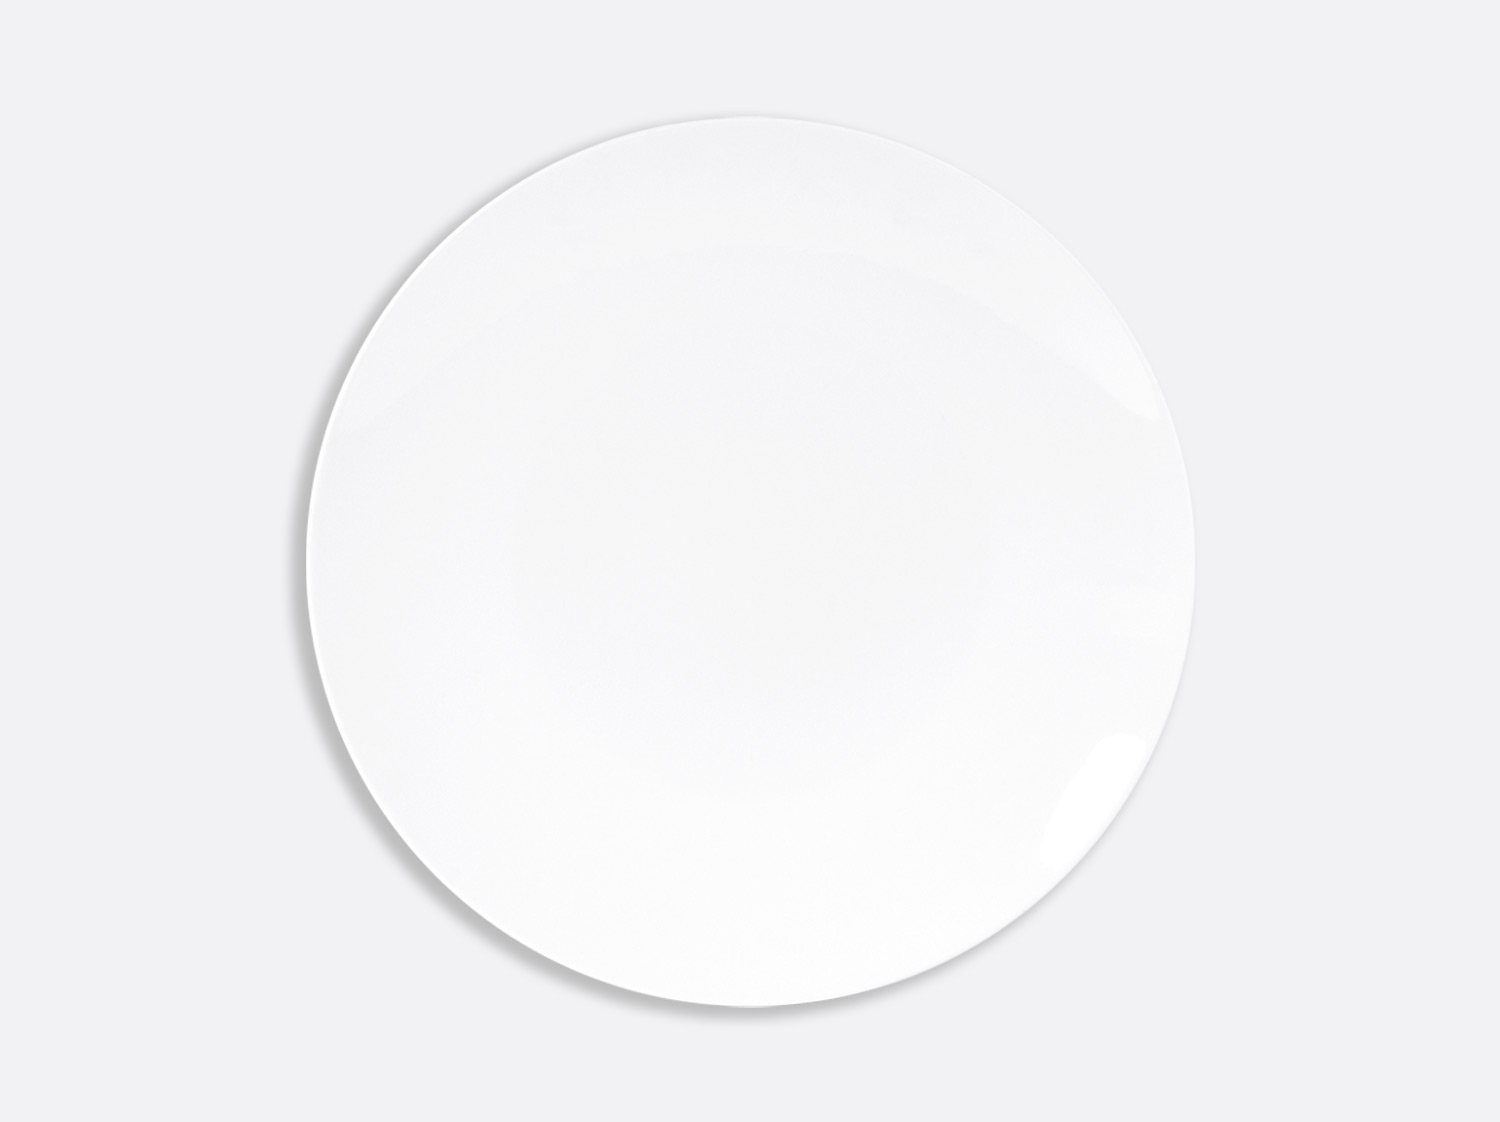 Assiette ultra plate 27 cm en porcelaine de la collection DOMUS BLANC Bernardaud